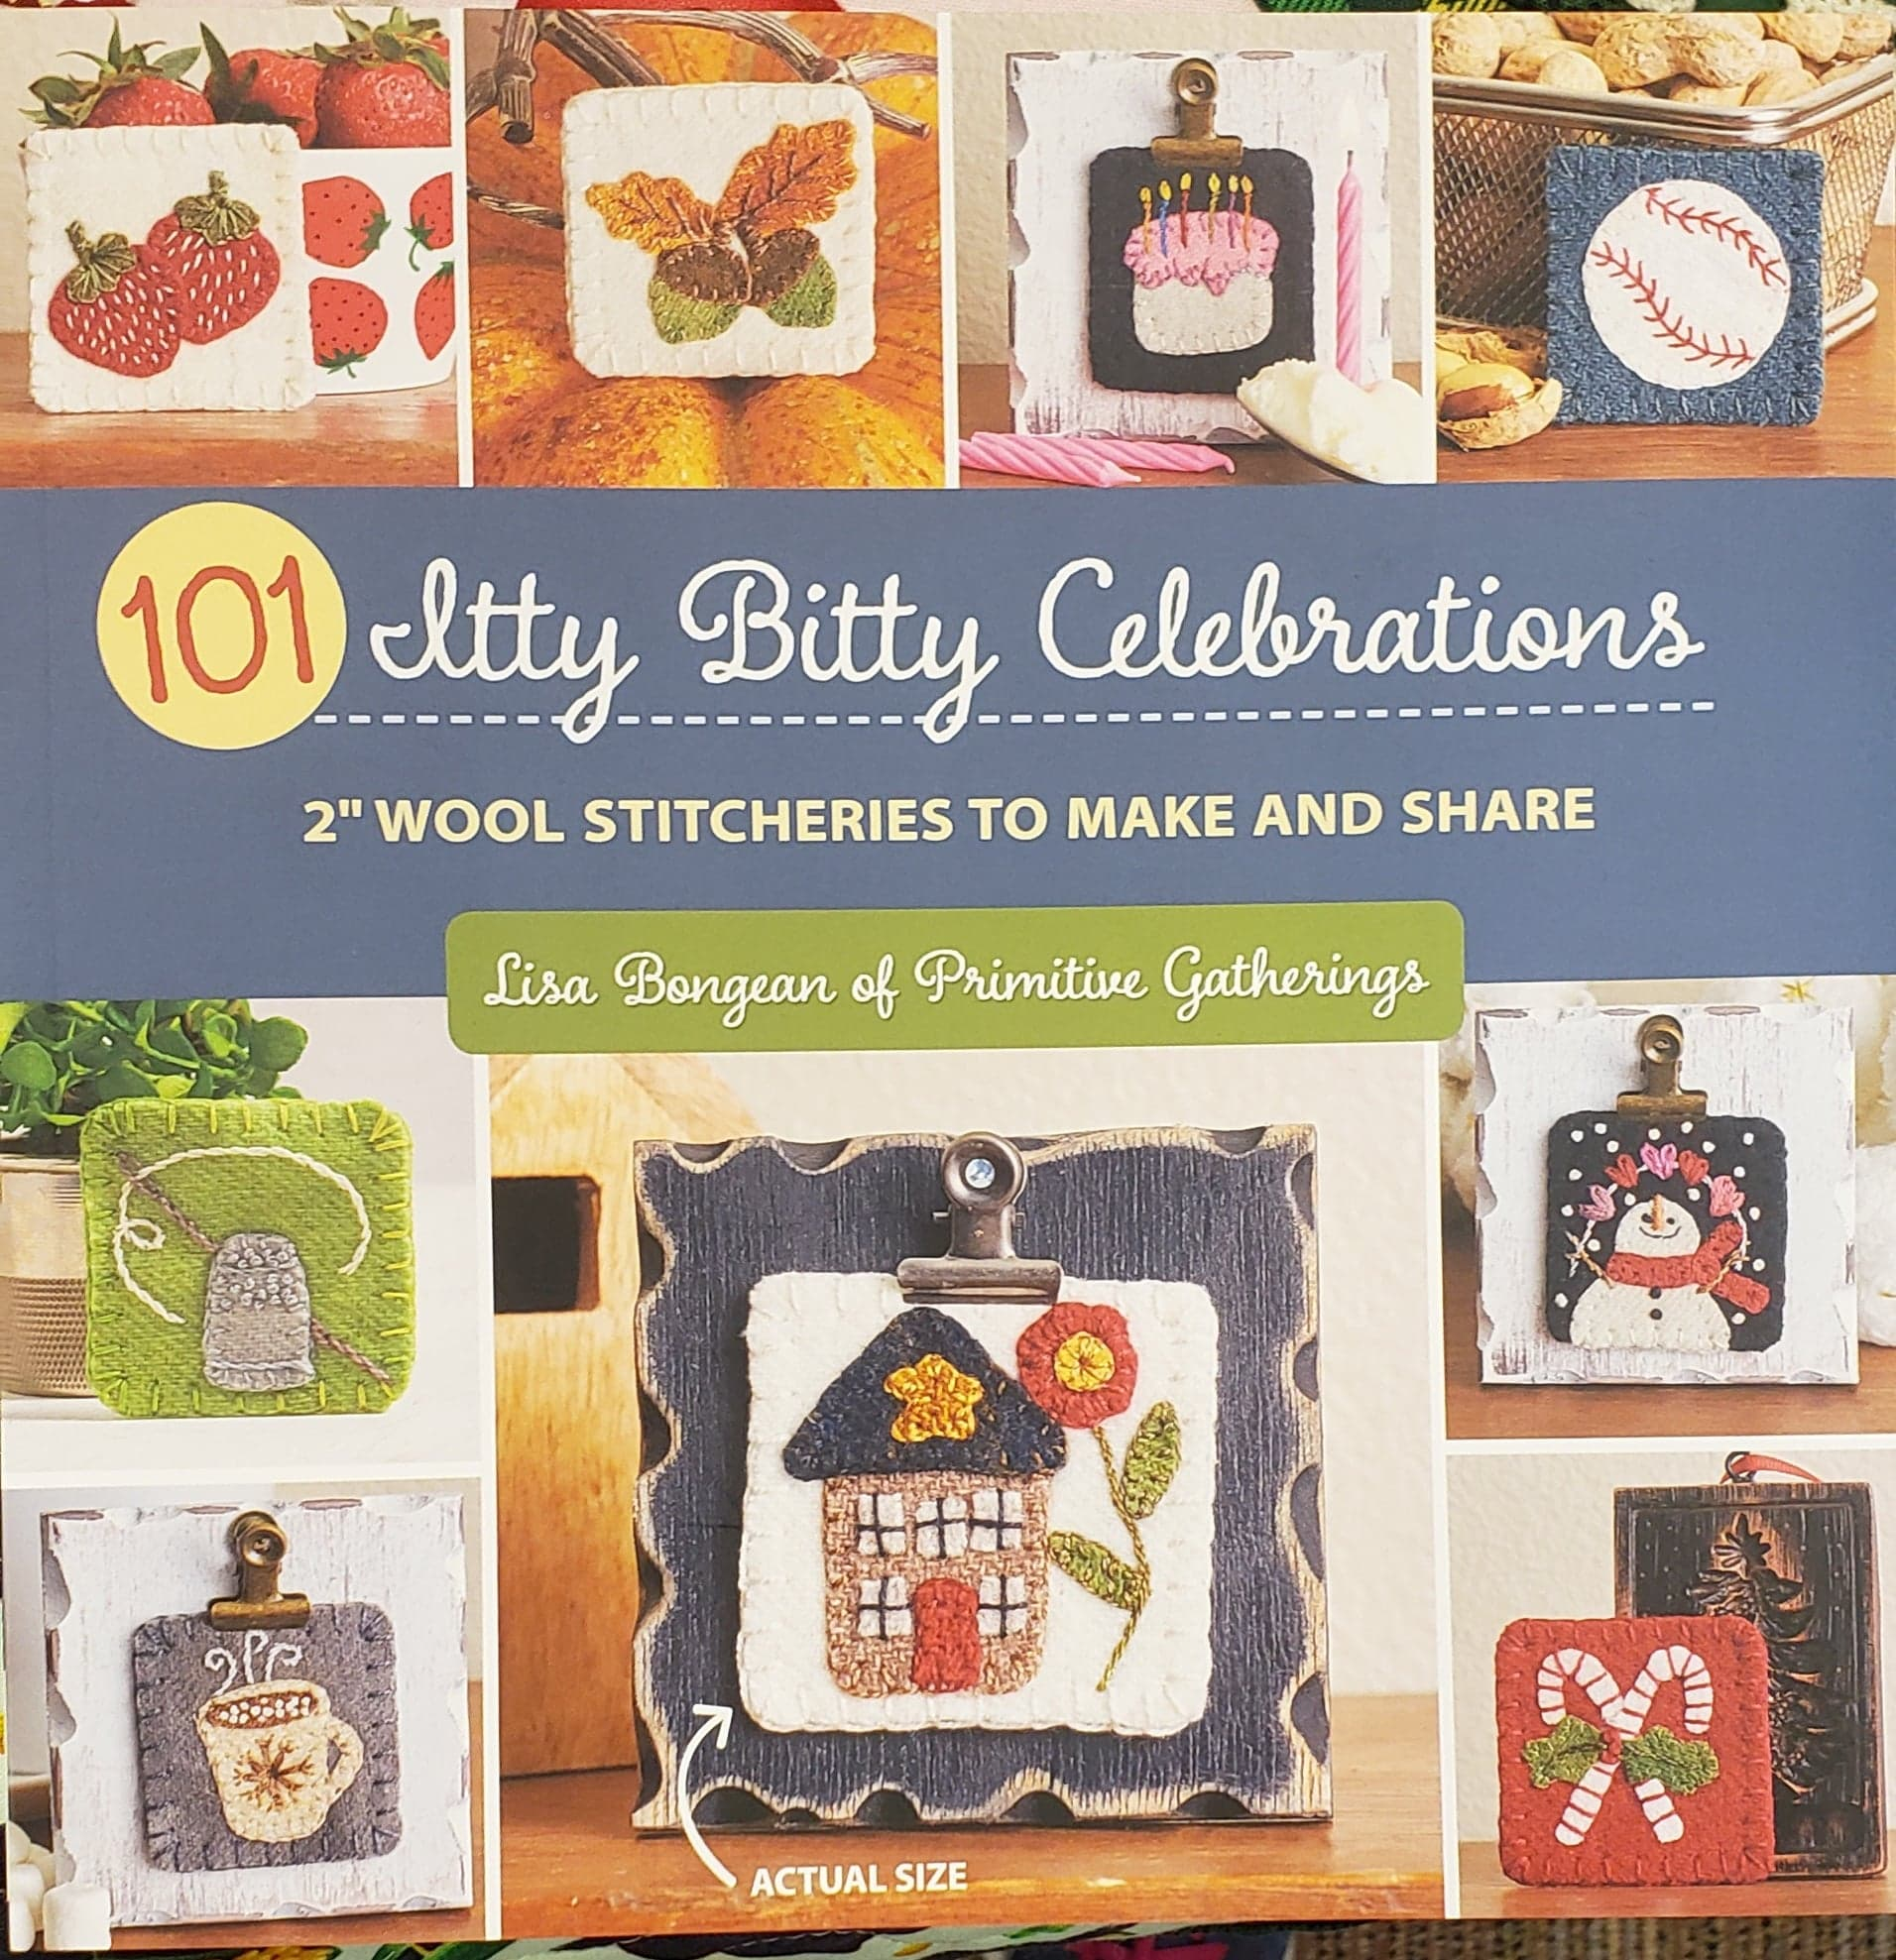 101 Itty Bitty Celebrations Book- 2 Wool Stitcheries to Make and Share